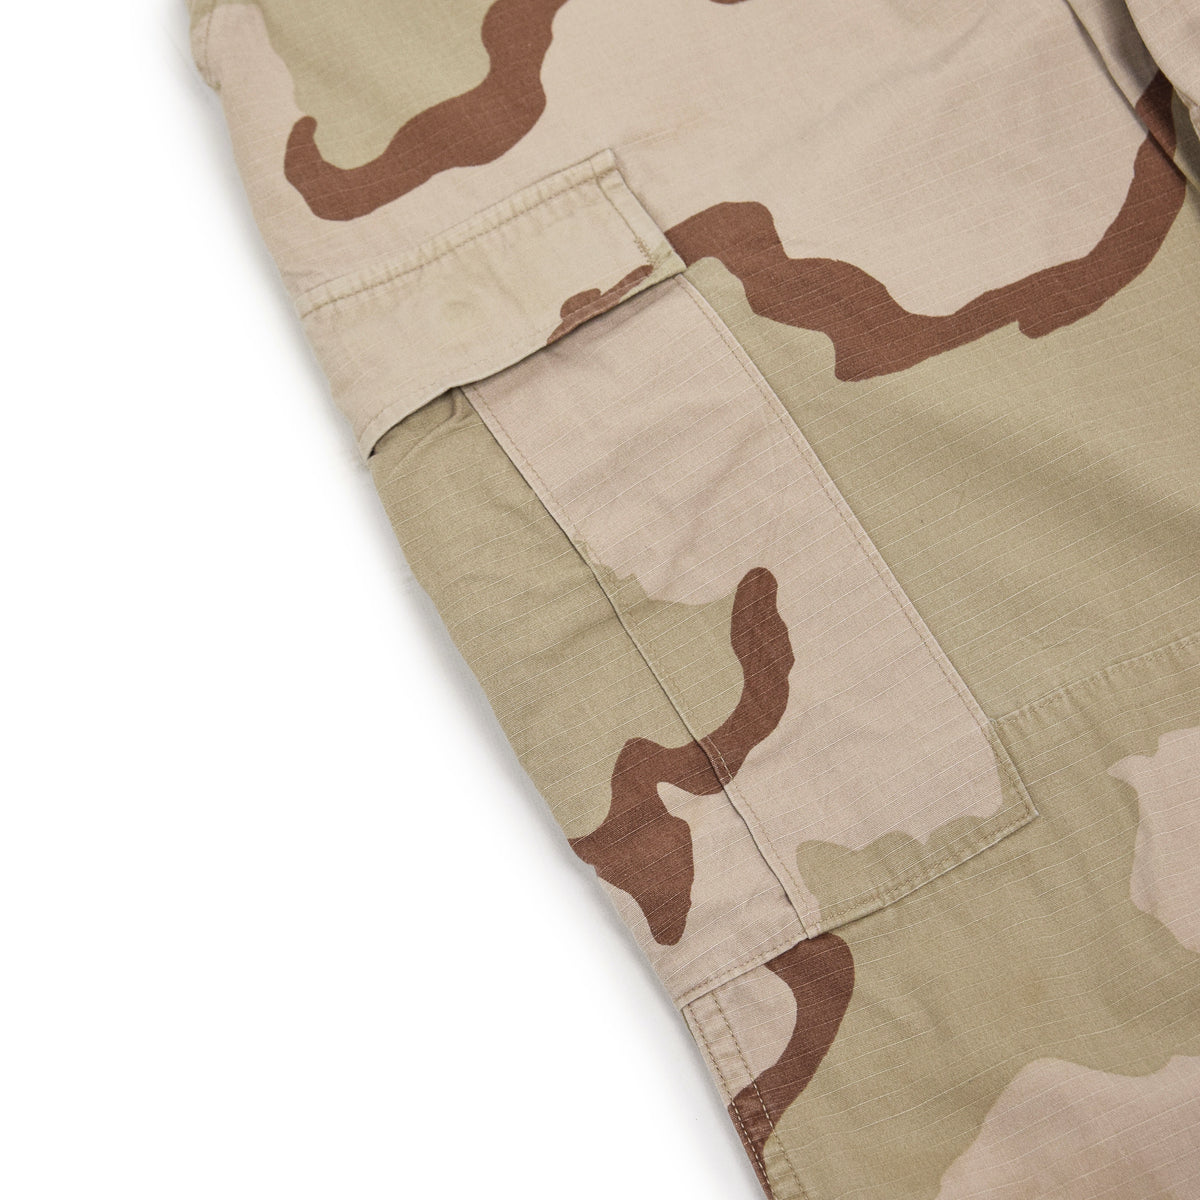 Vintage US Army Desert Camo Ripstop Cargo Combat Field Trousers M Short thigh pocket